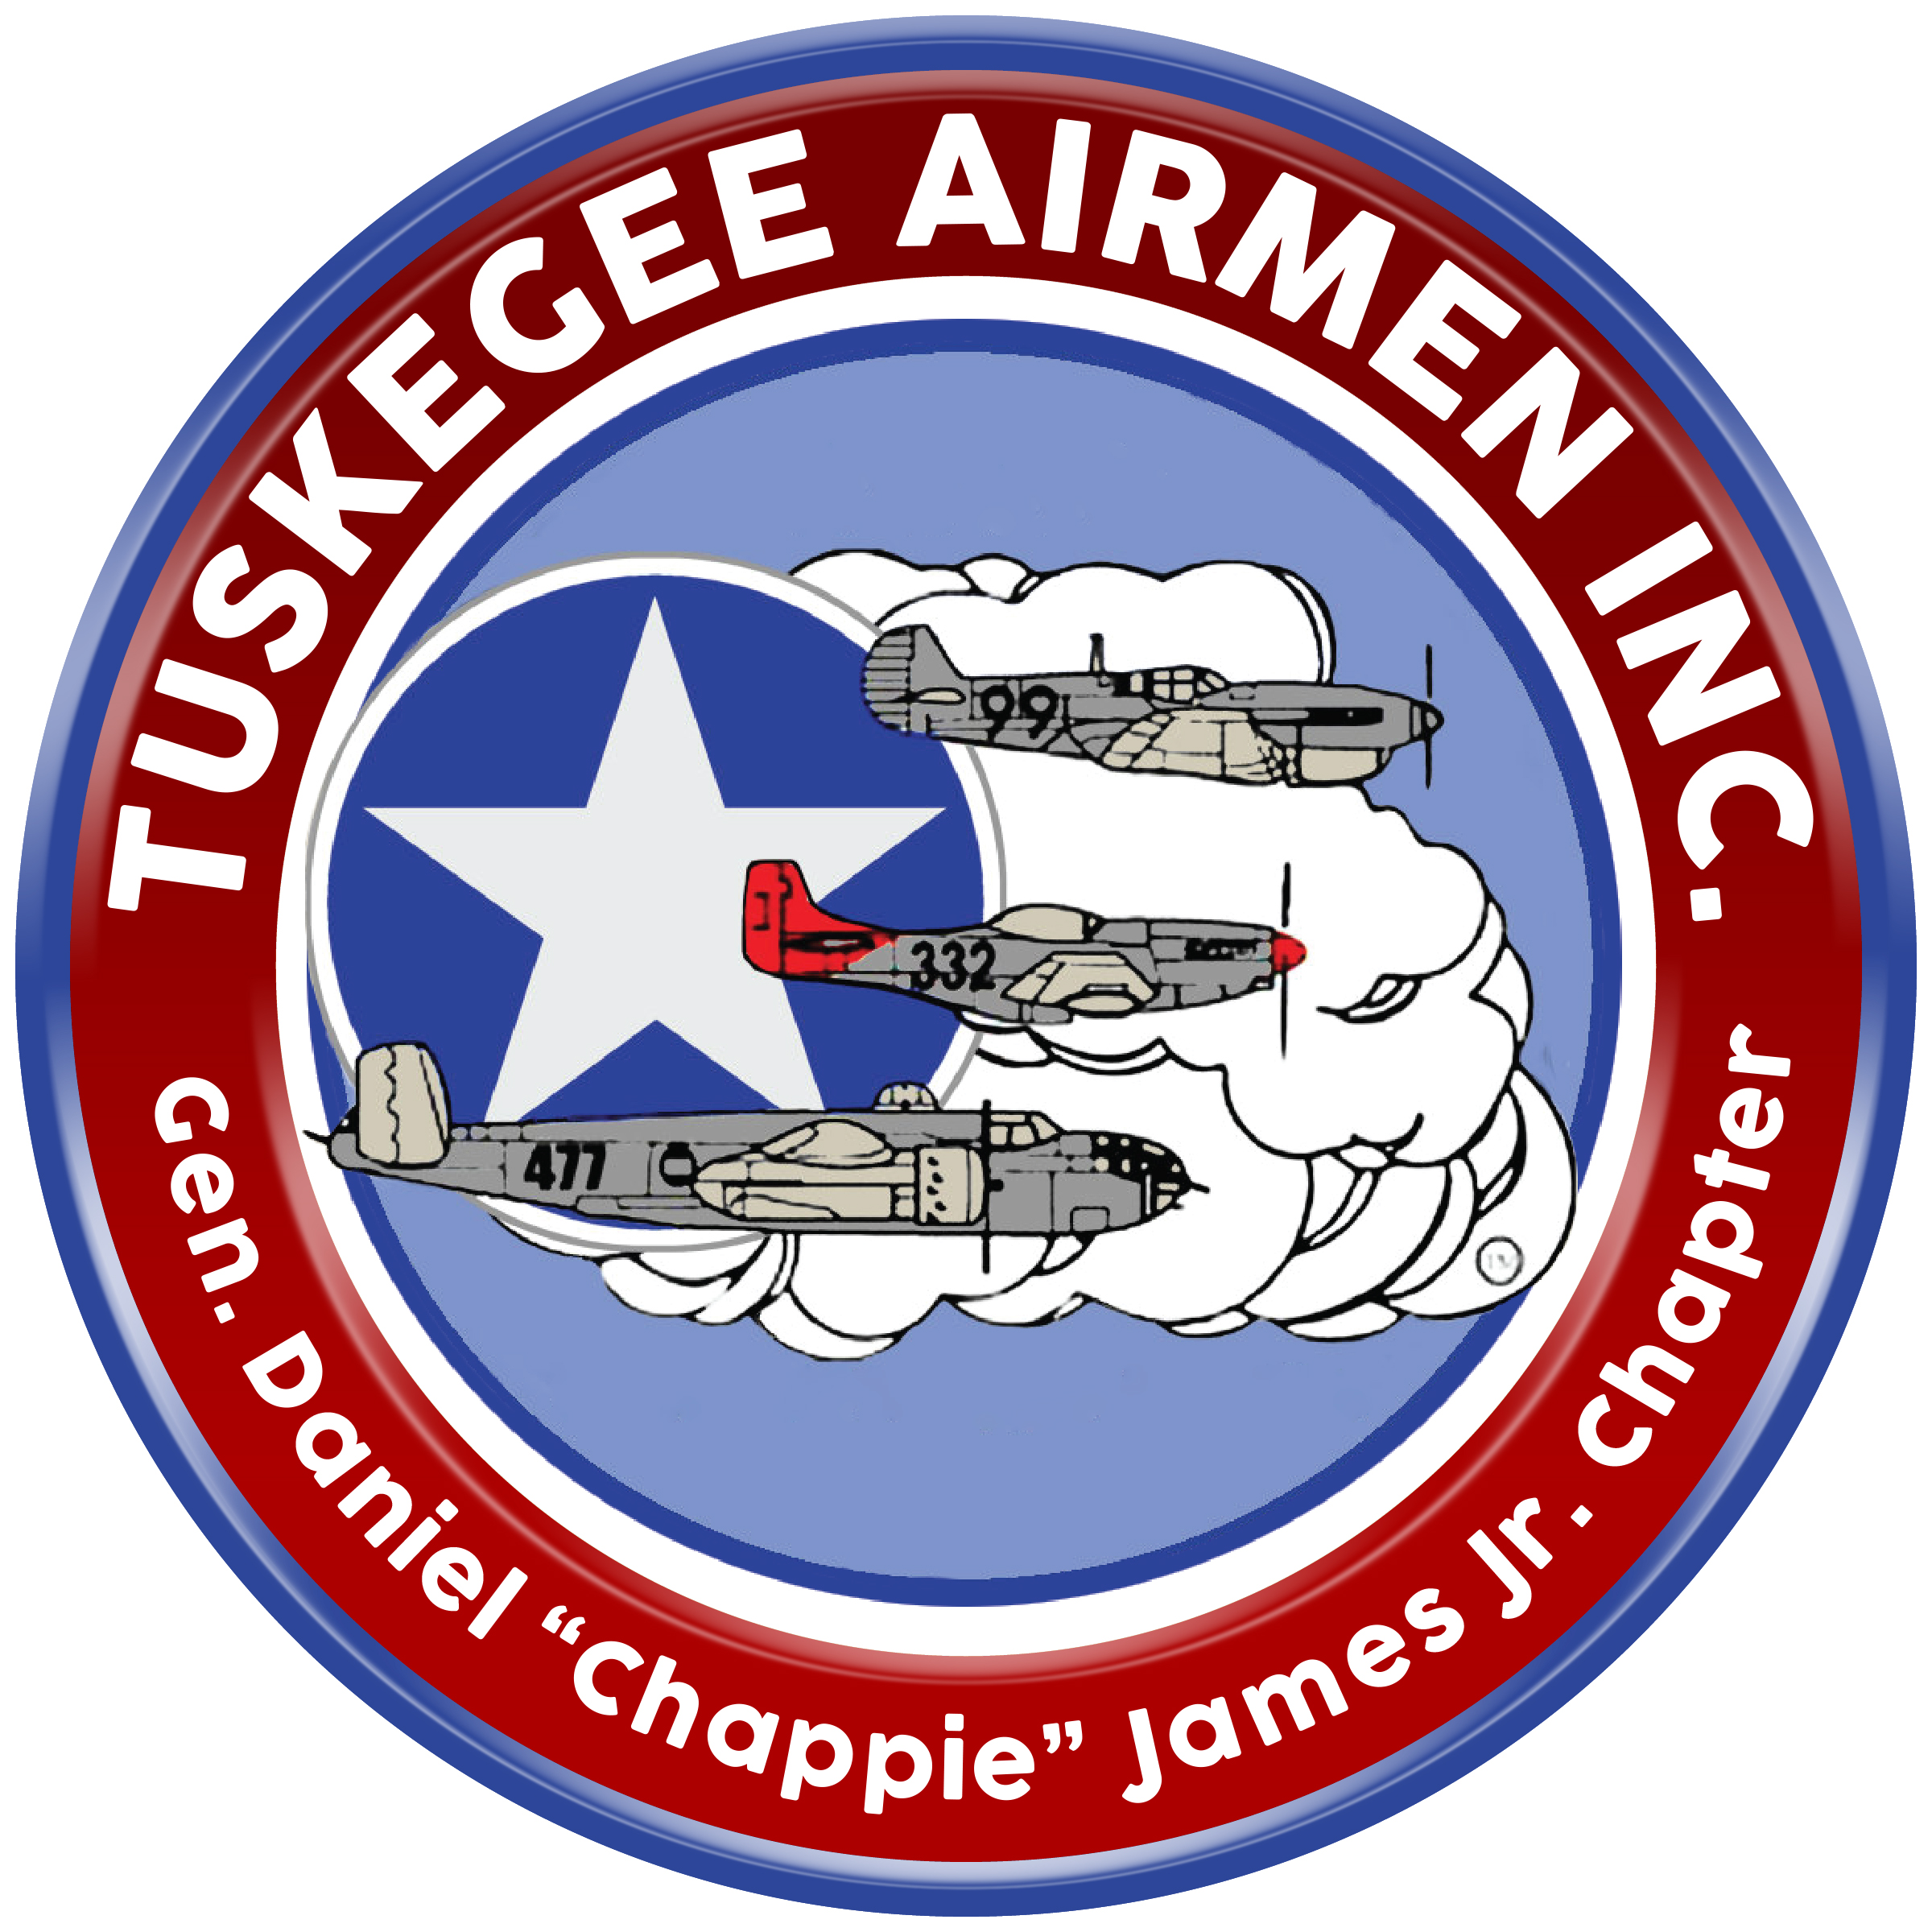 Tuskegee Airmen 2nd Annual Charity Golf Tournament - Default Image of Luncheon Ticket (non-player)